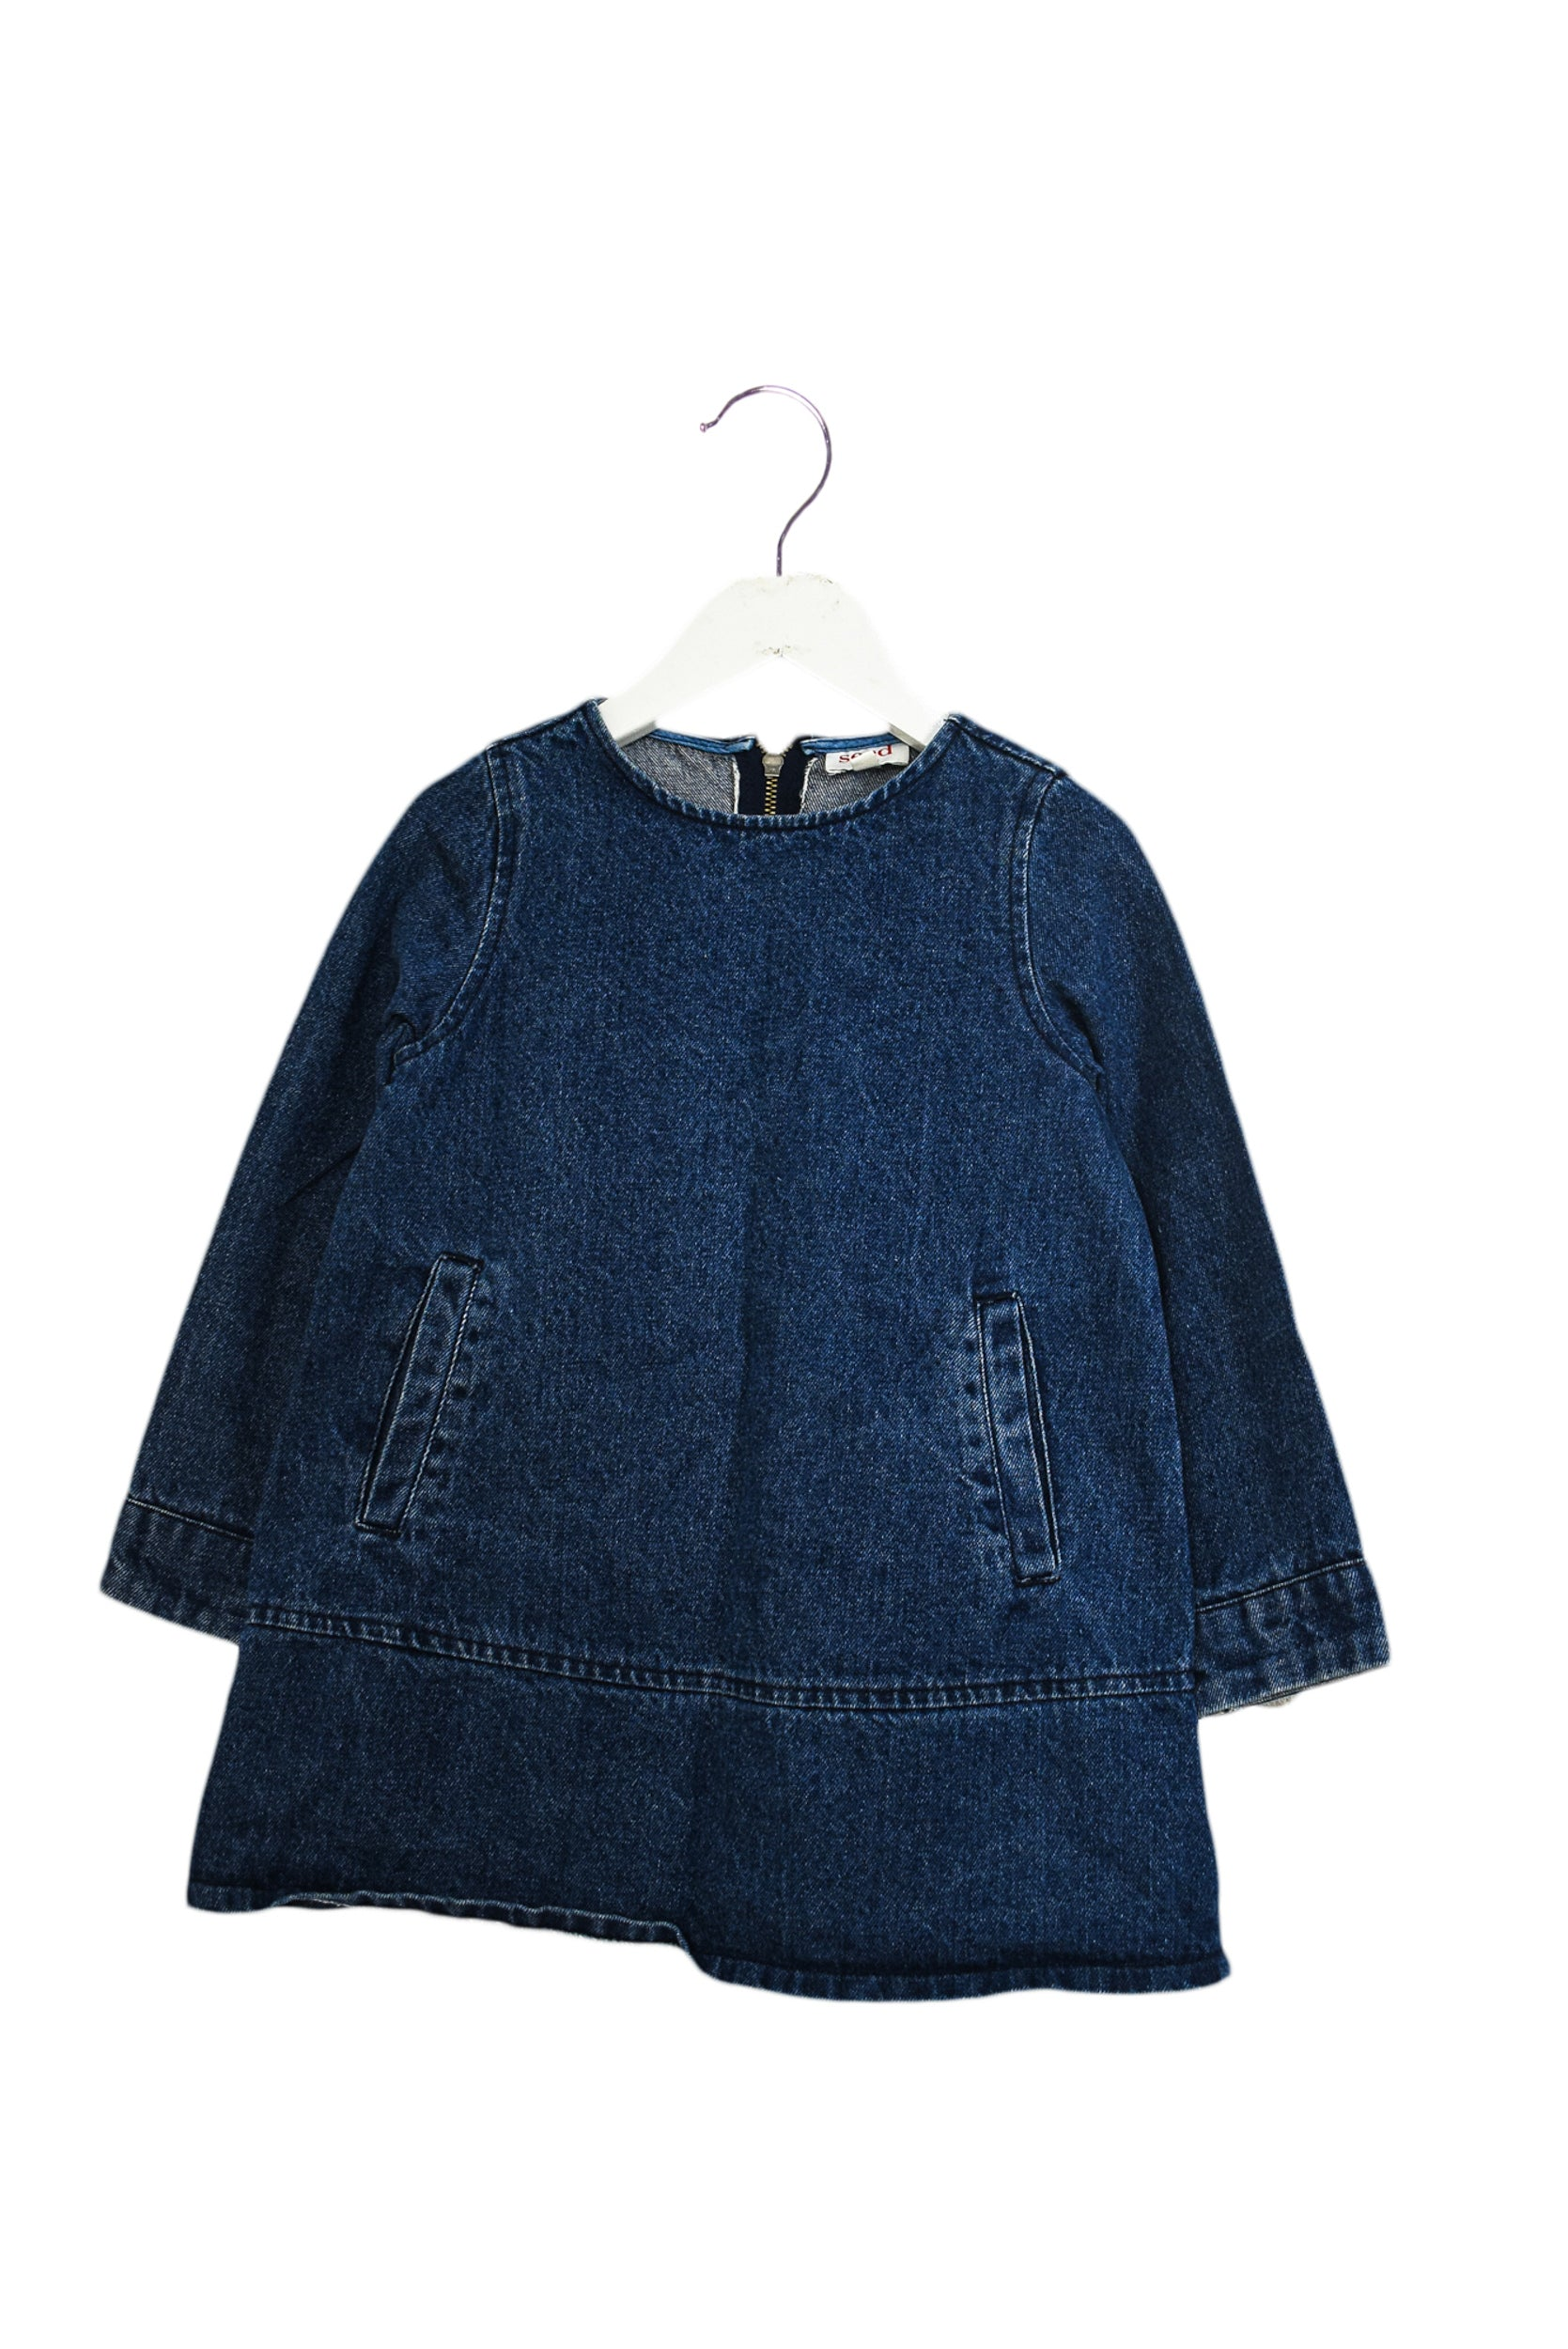 Long Sleeve Dress 3T at Retykle